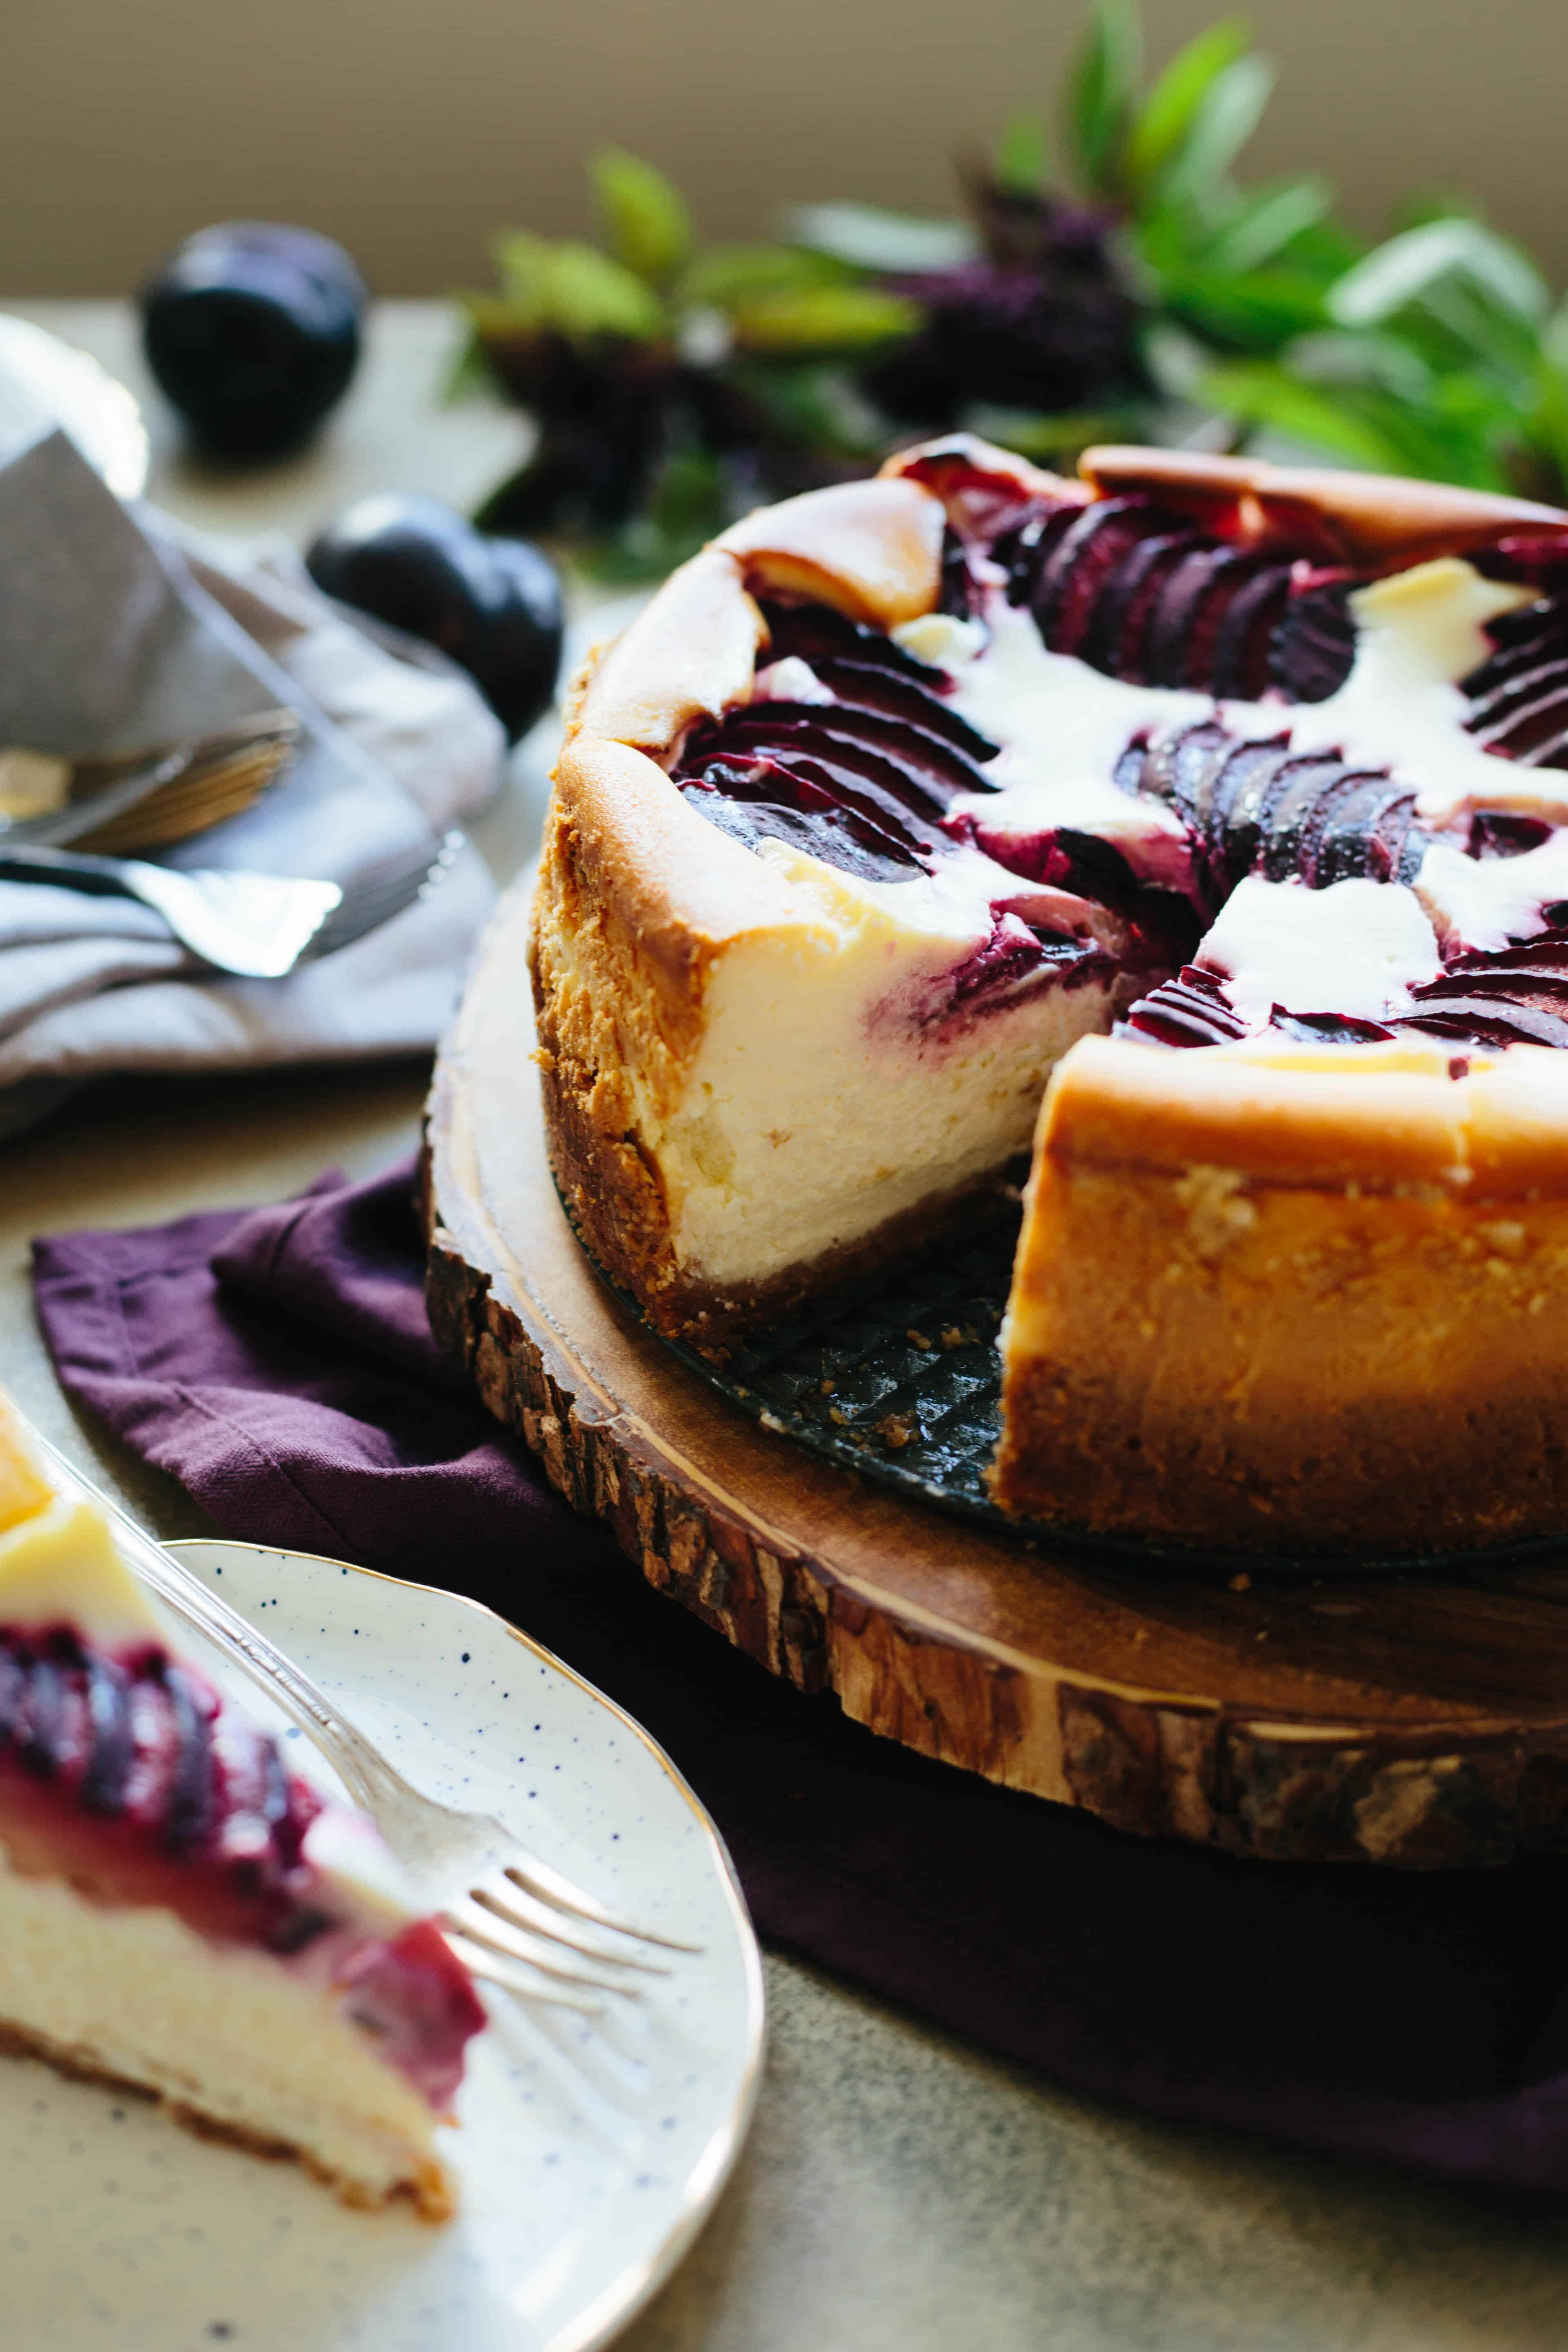 Plum ricotta cheesecake with a slice missing, sitting on a wood board.